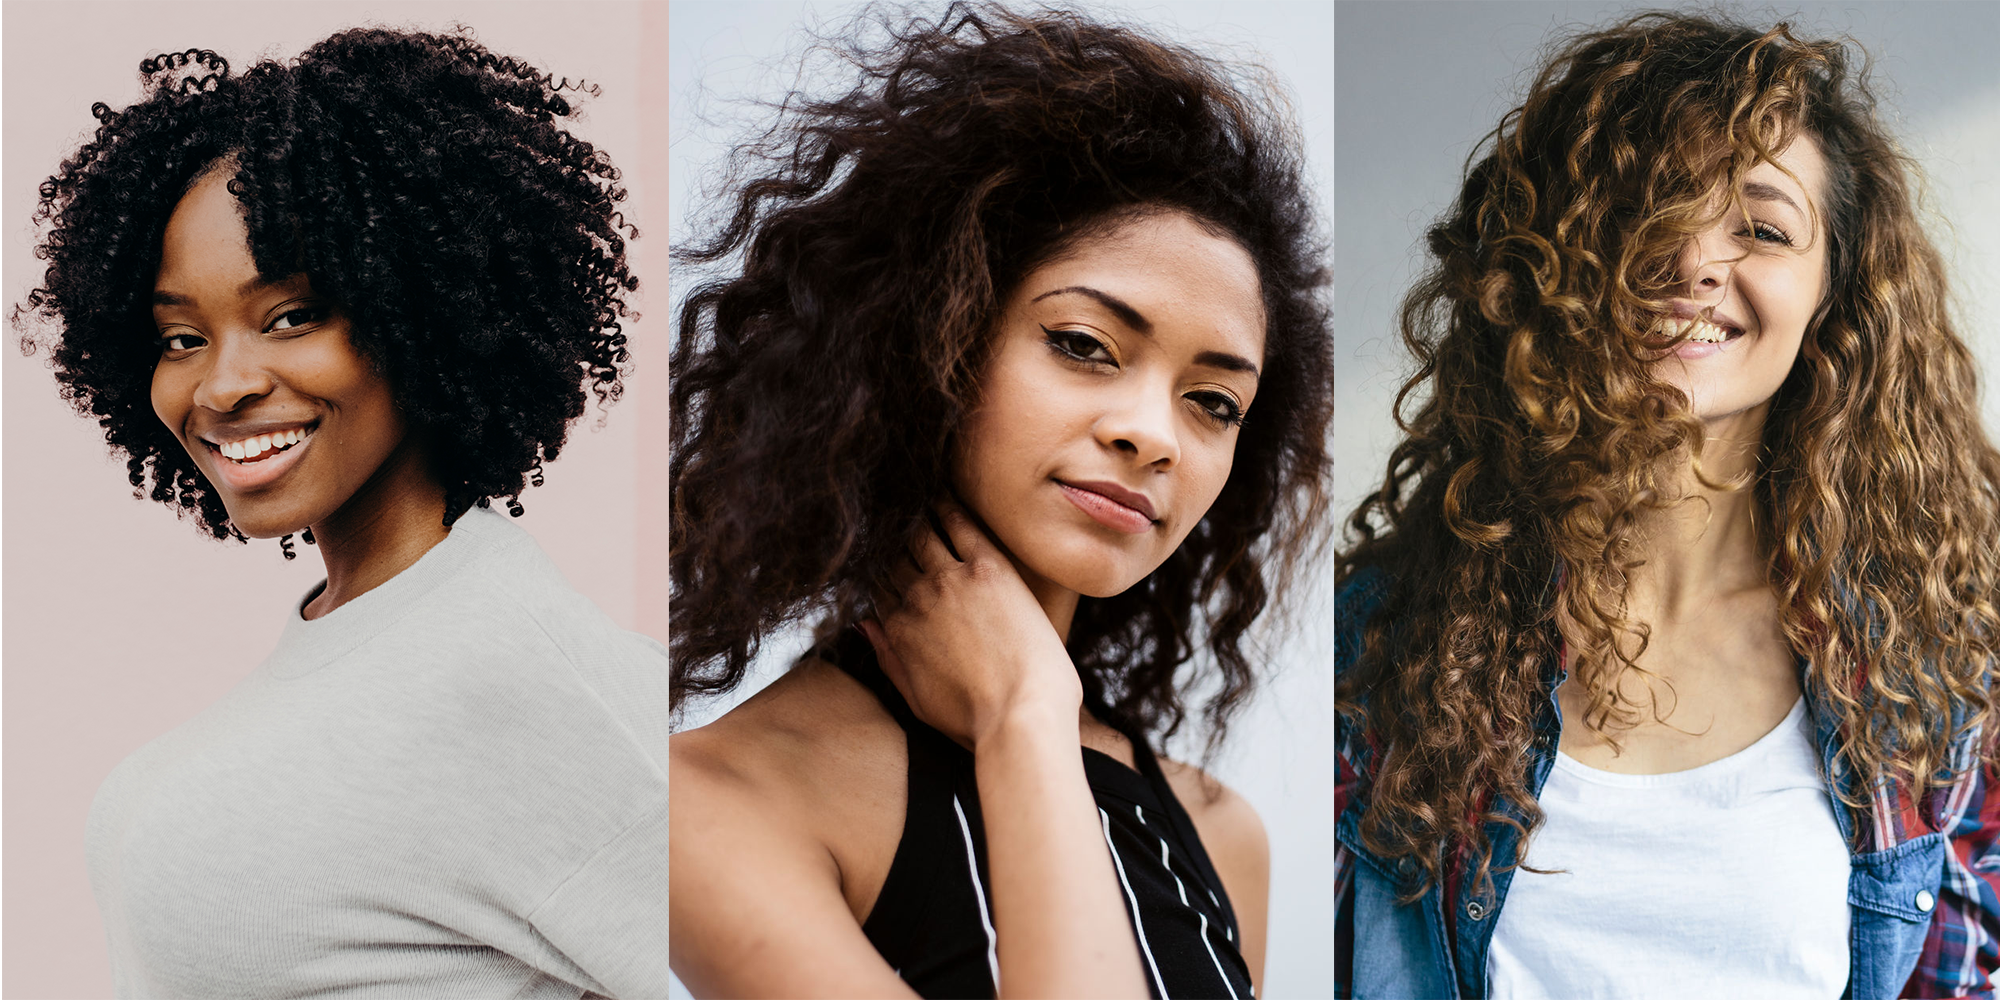 How to make my curly hair less frizzy